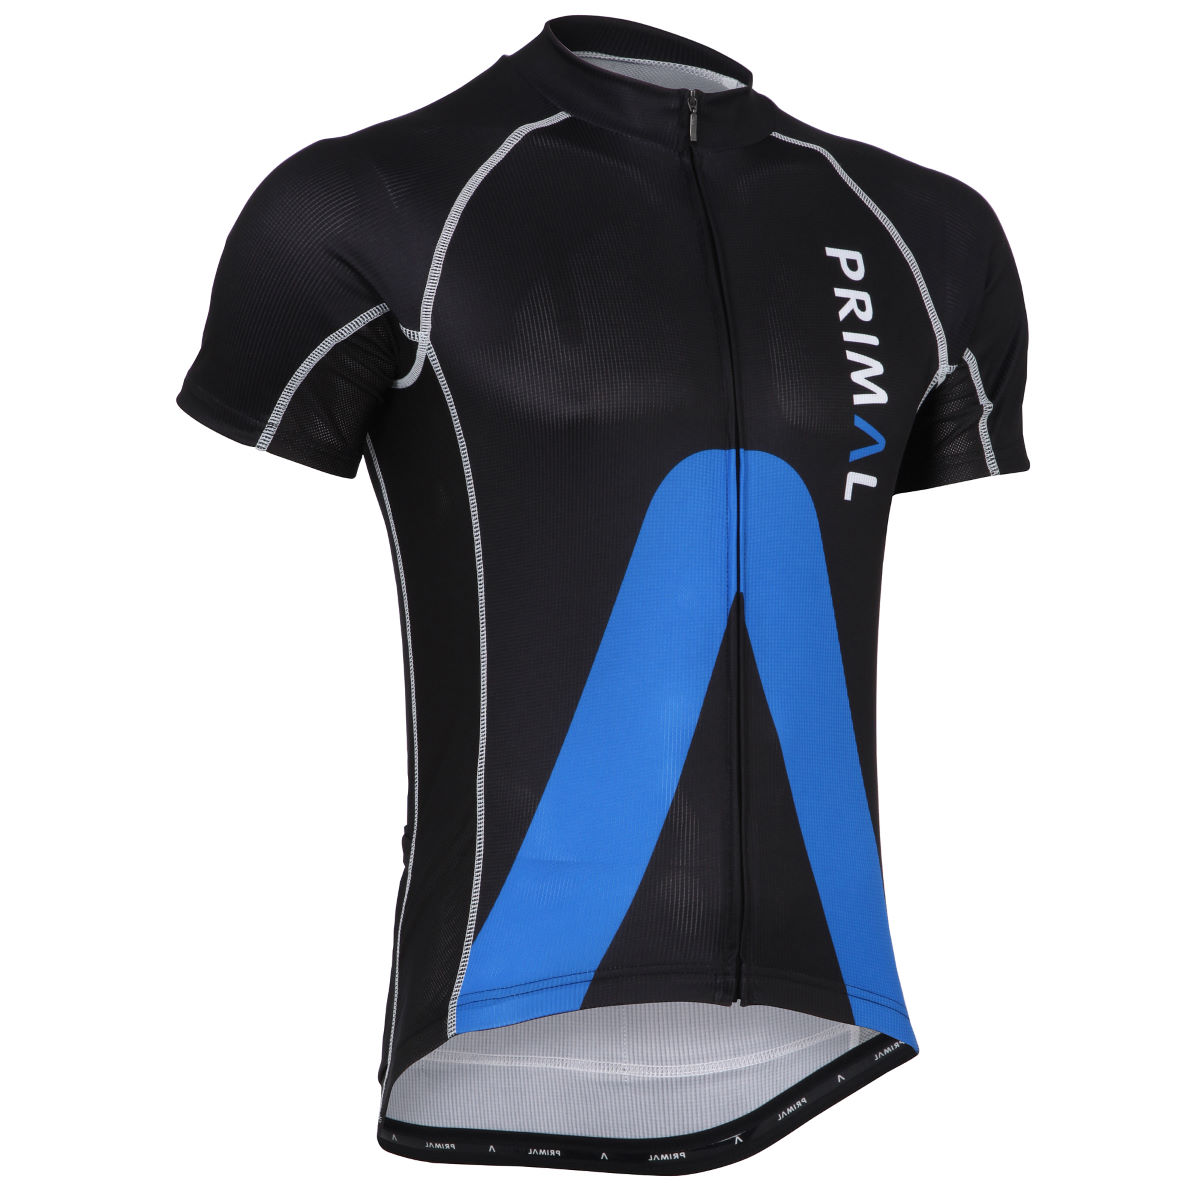 Maillot Primal Aro Evo (manches courtes) - Small Noir/Bleu Maillots